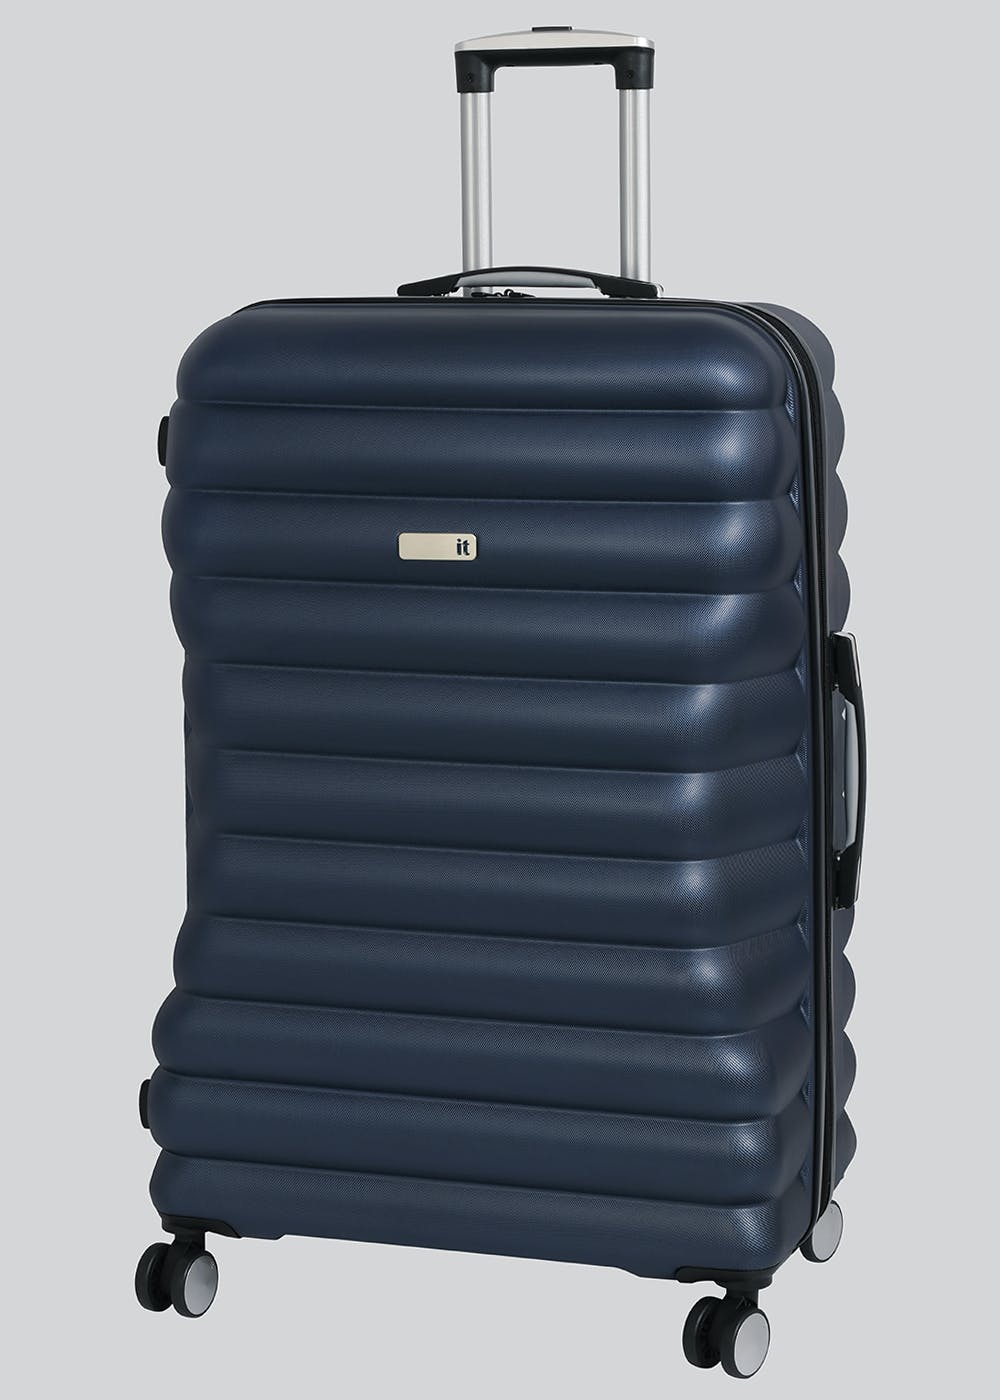 It Luggage Cloud Dancer Suitcase by Matalan